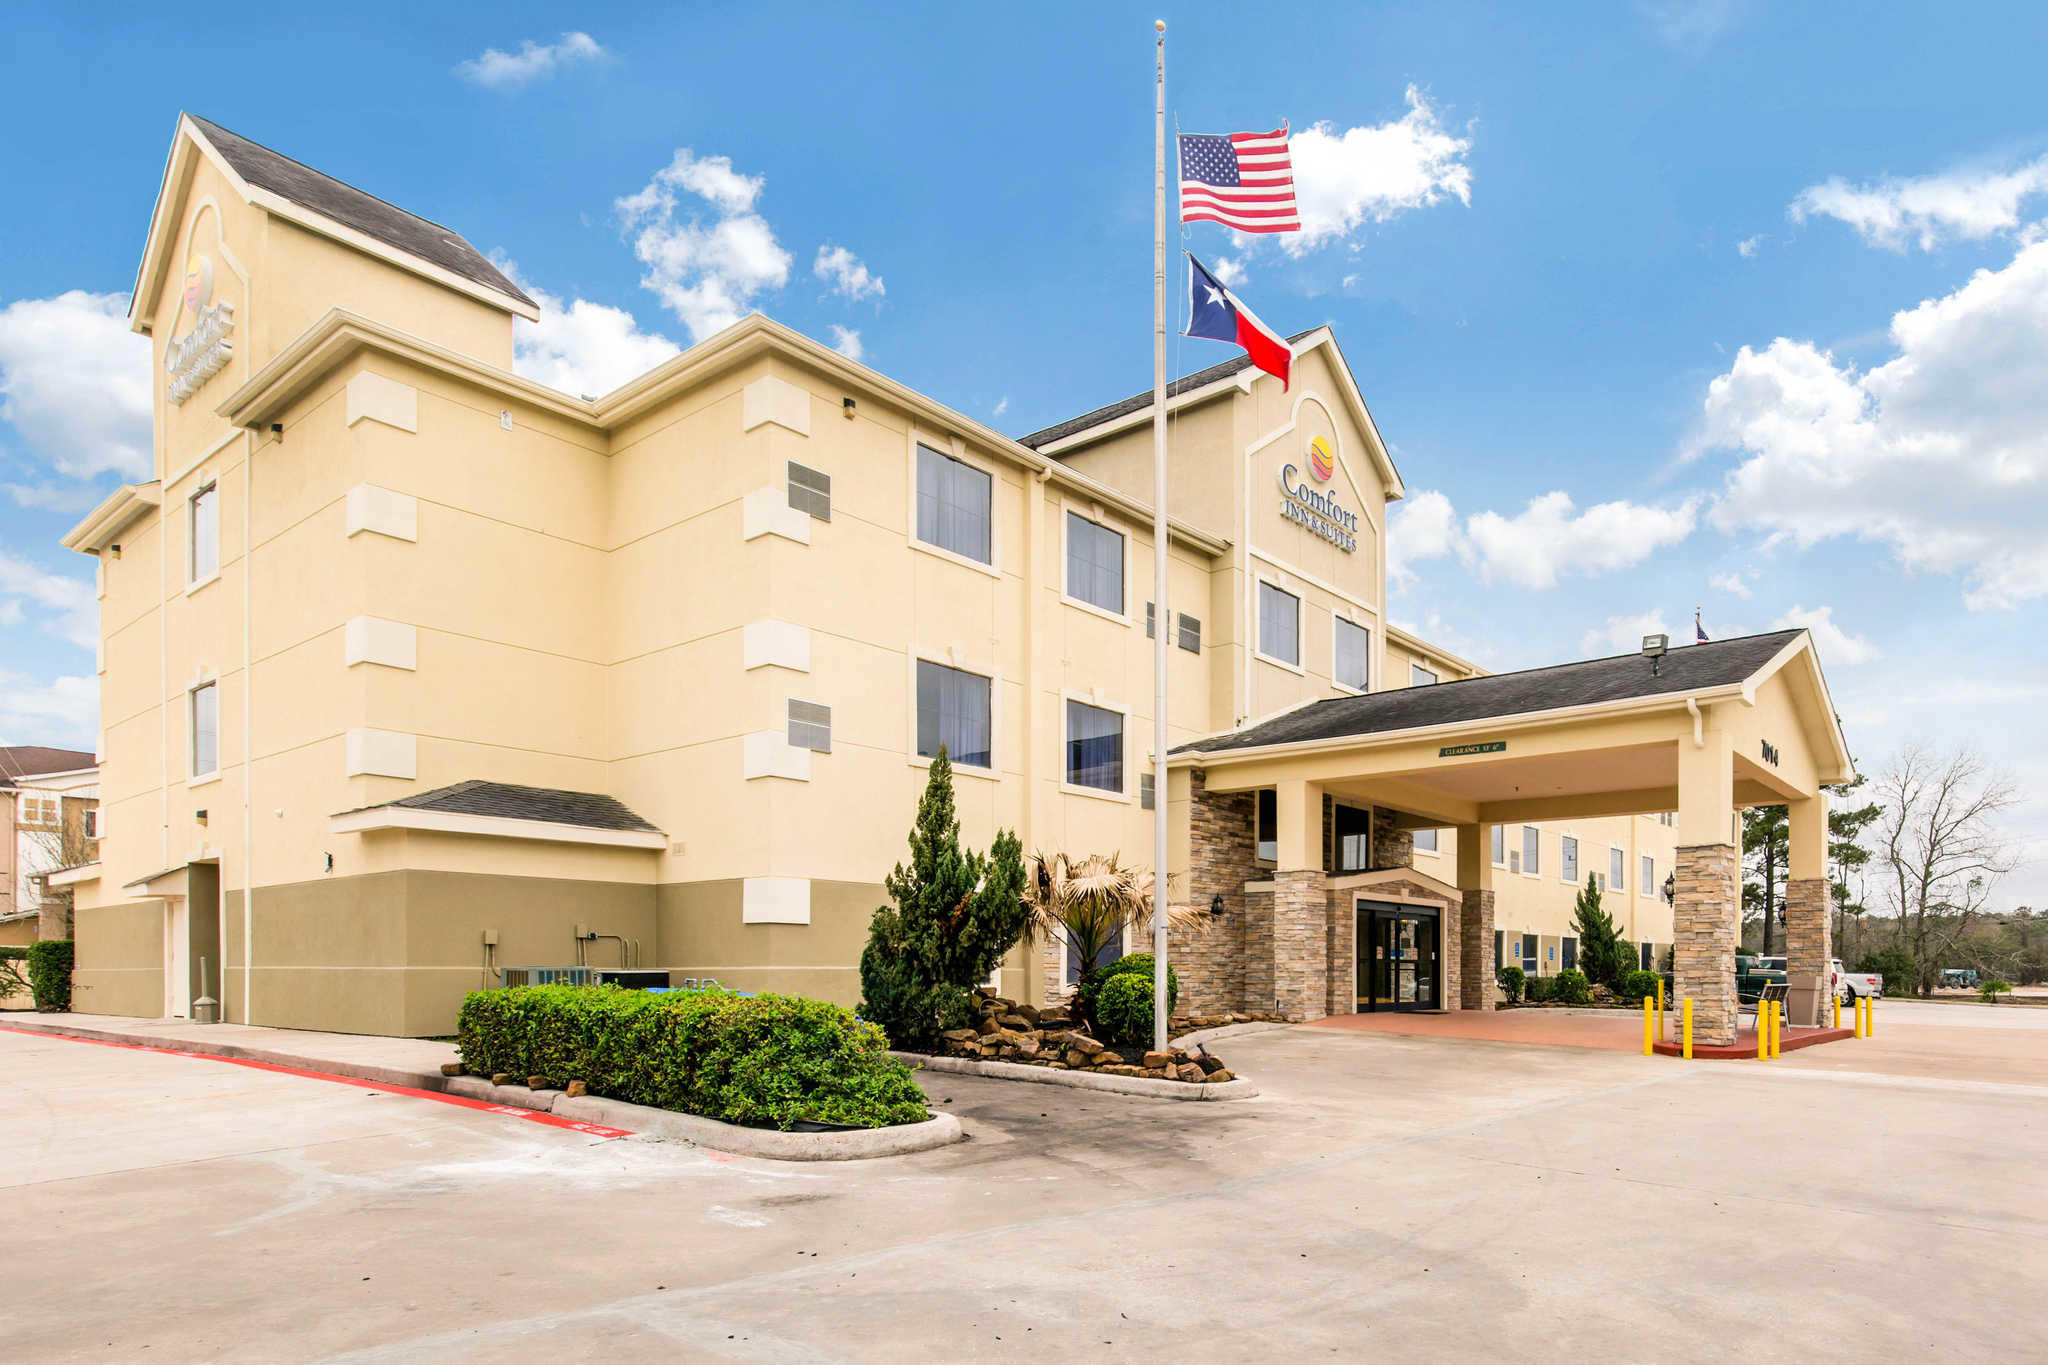 Comfort Inn Amp Suites Iah Bush Airport East Humble Texas